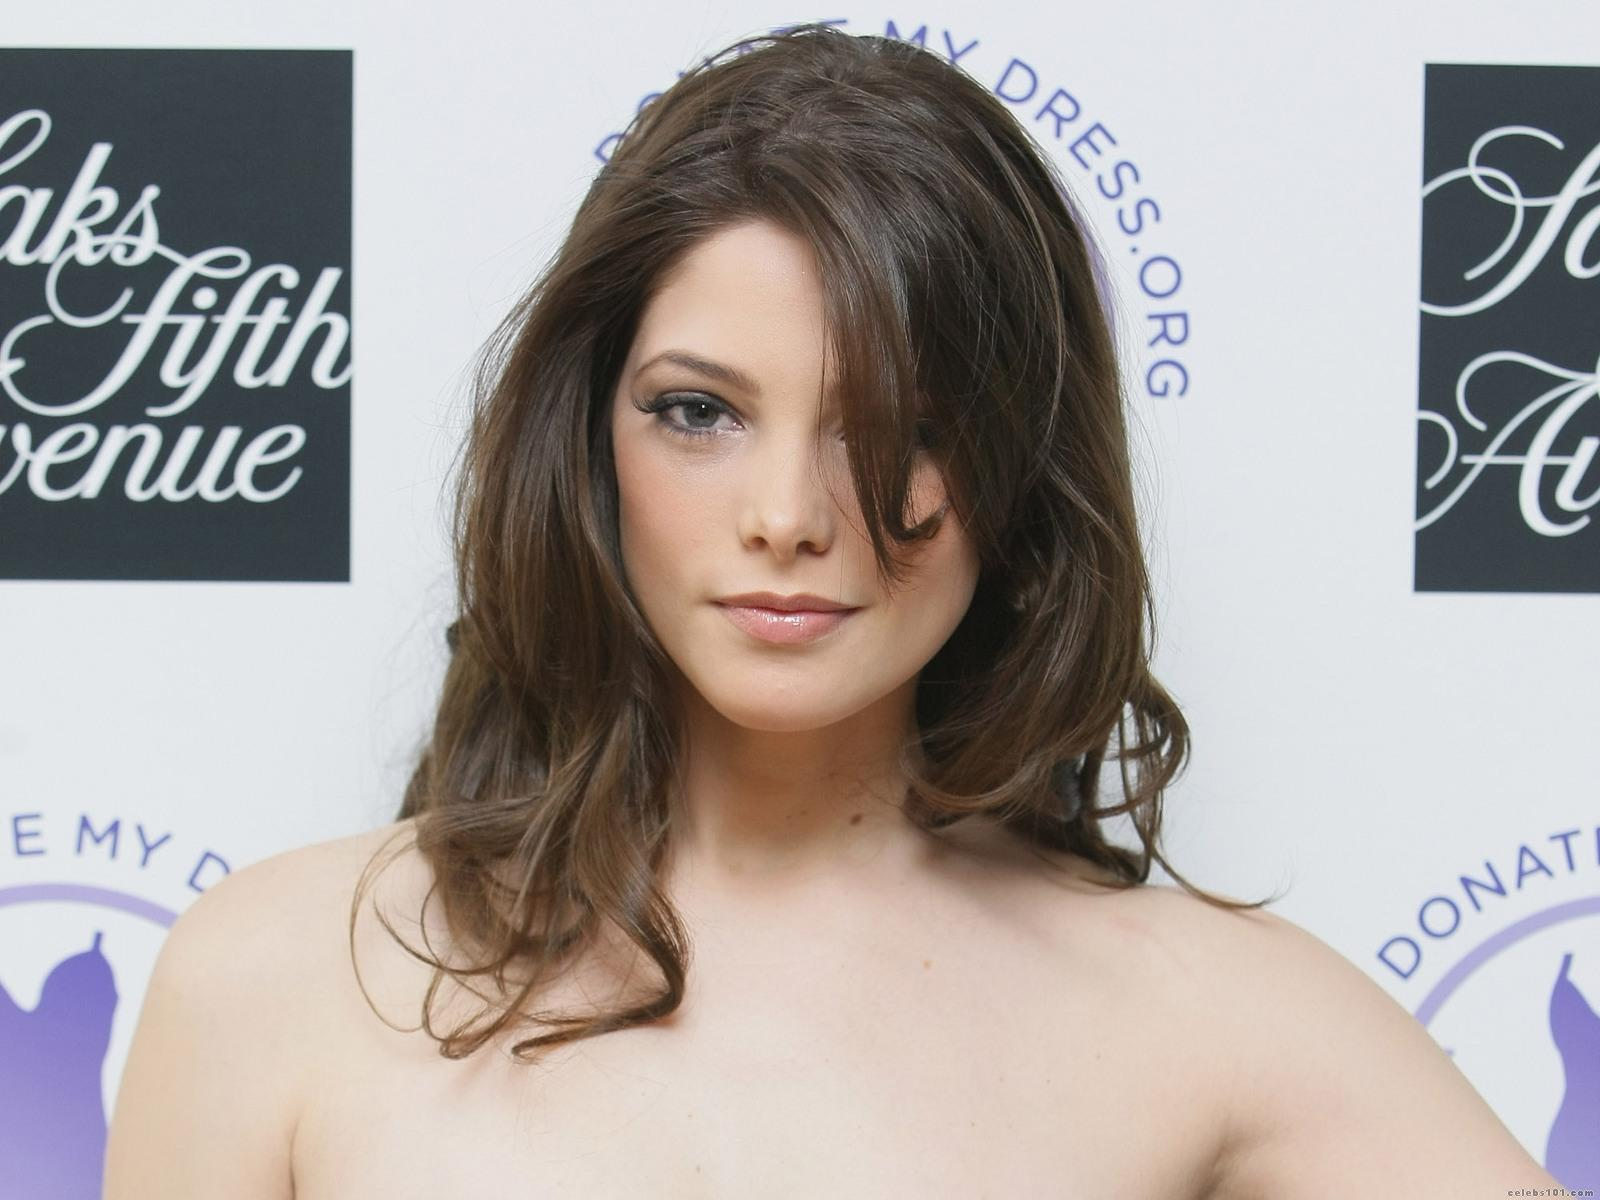 Ashley greene,Actress, Model,Pictures